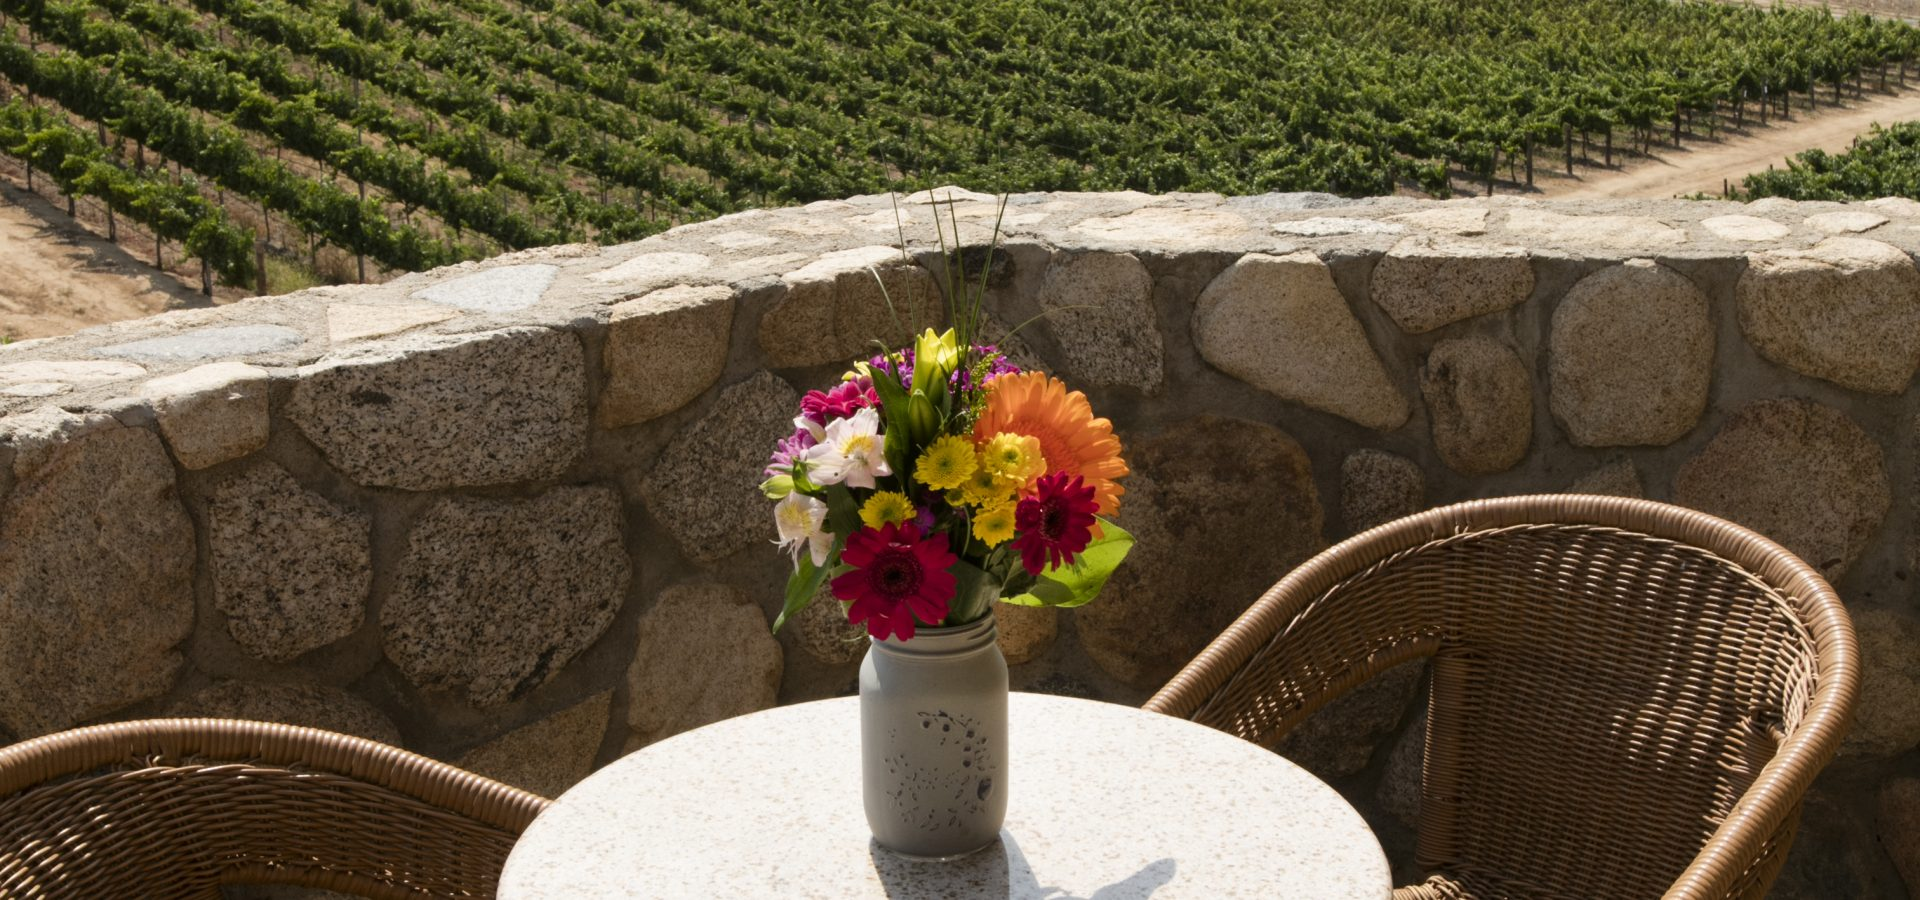 outdoor balcony accommodations at Temecula spa resort